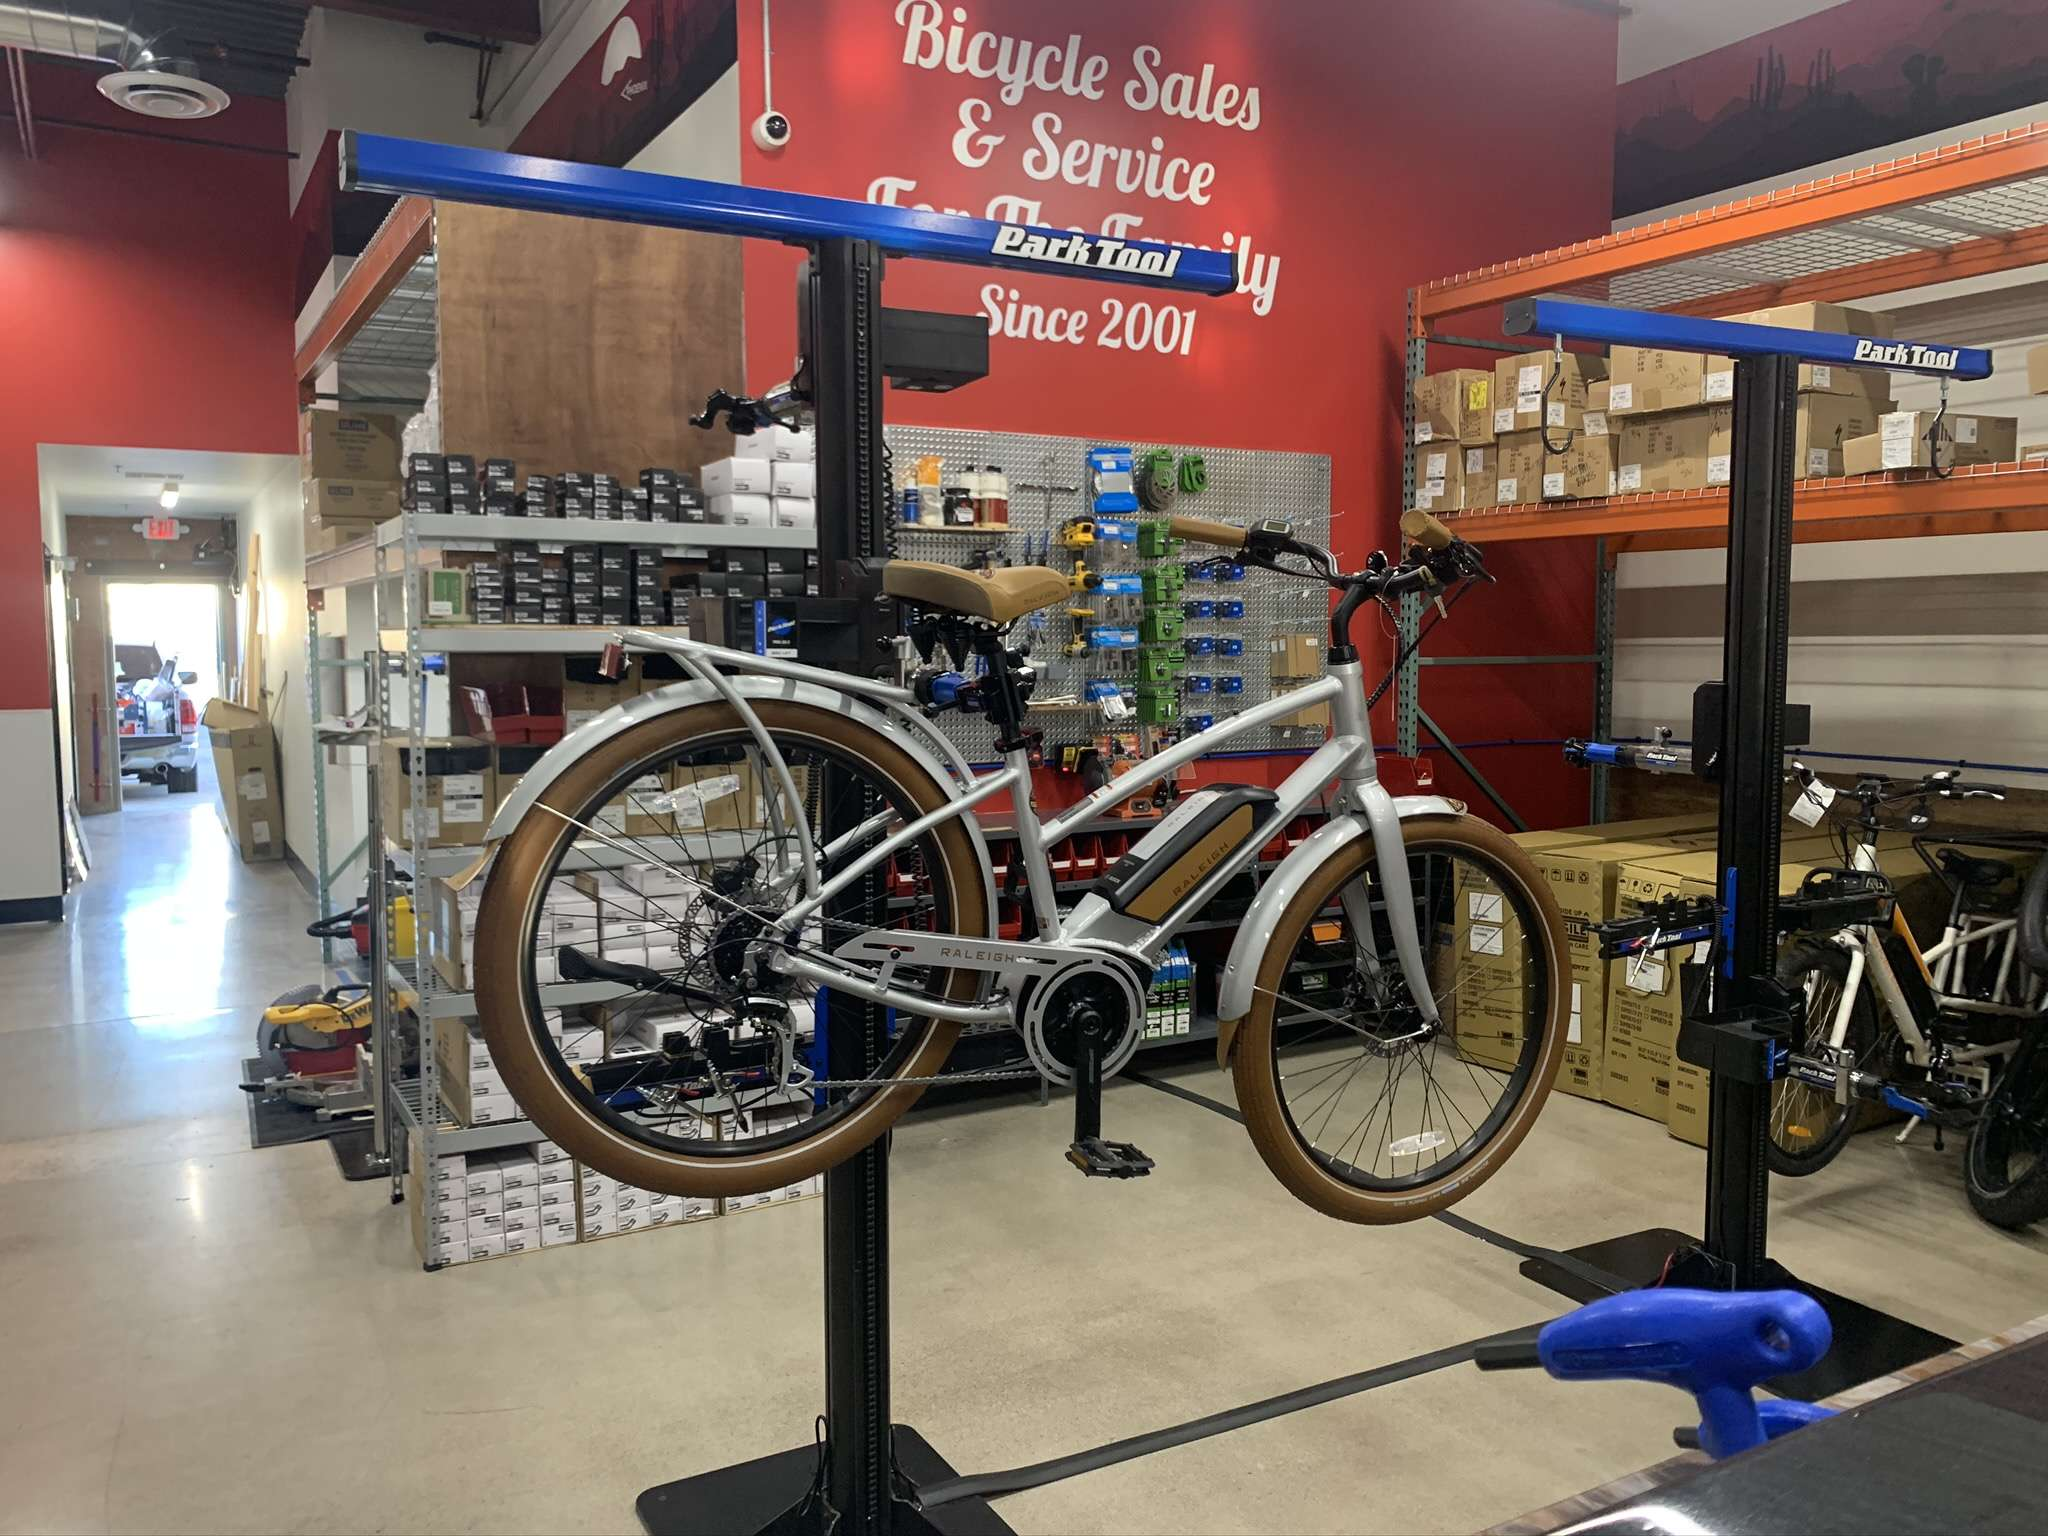 Mesa Arizona bike shop near me - E-bikes